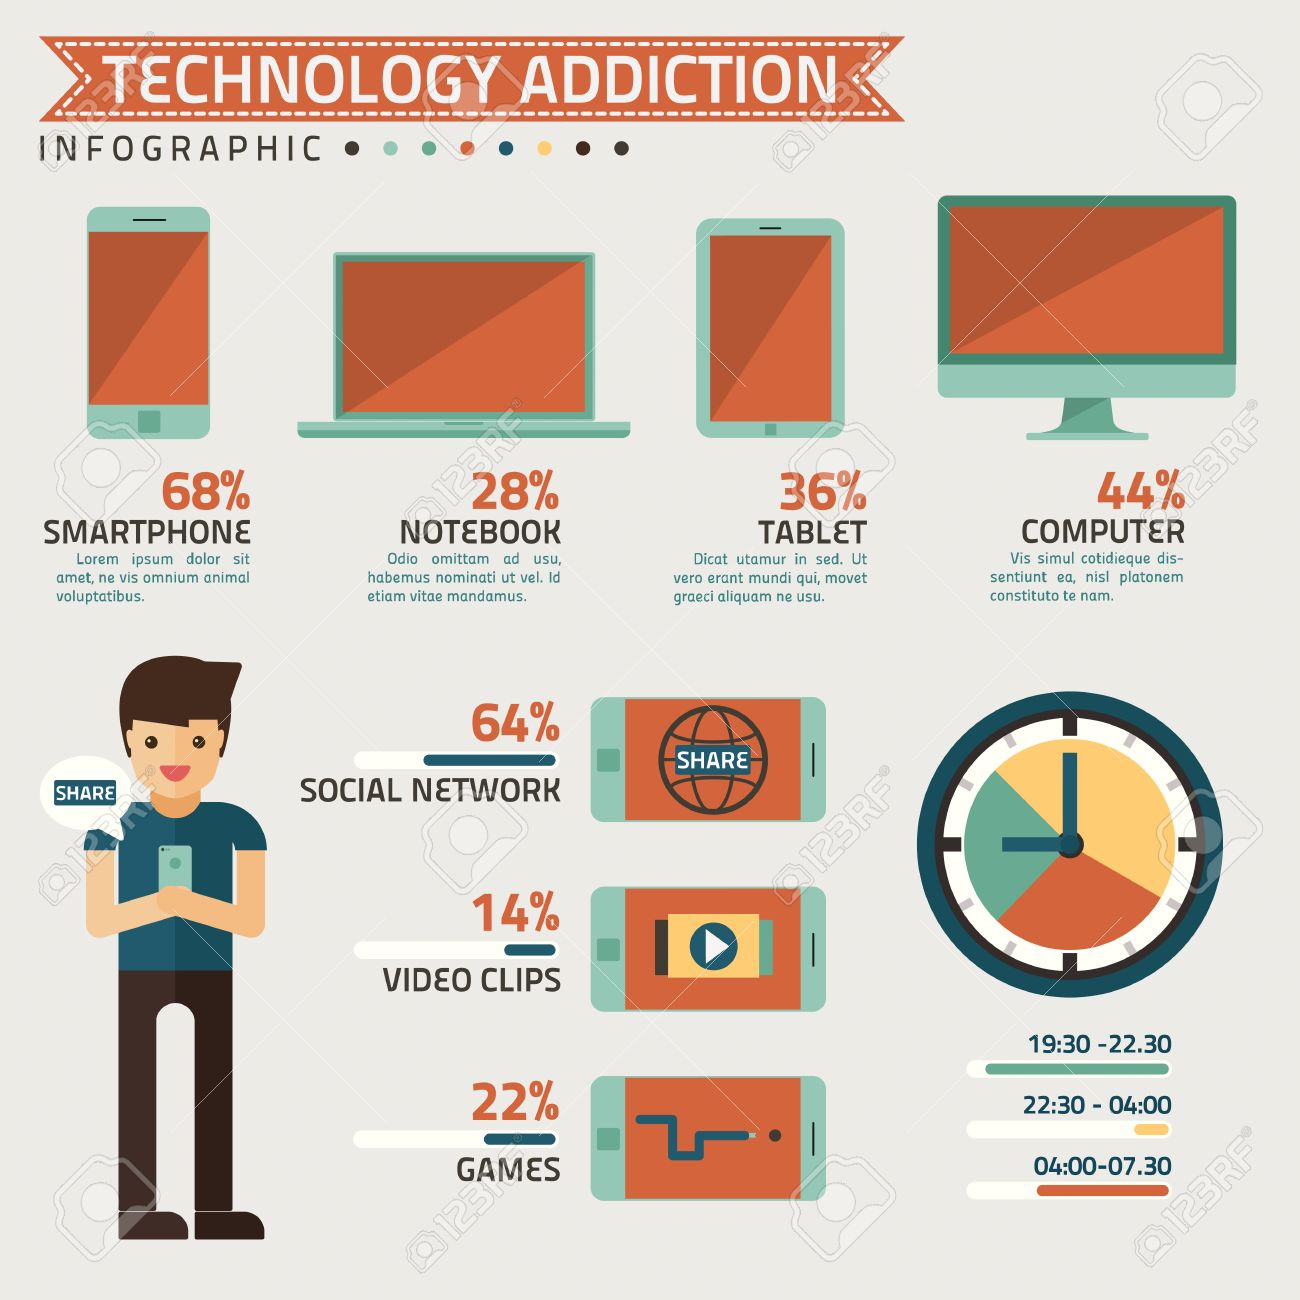 Technology Addiction Infographic Royalty Free Cliparts, Vectors ...